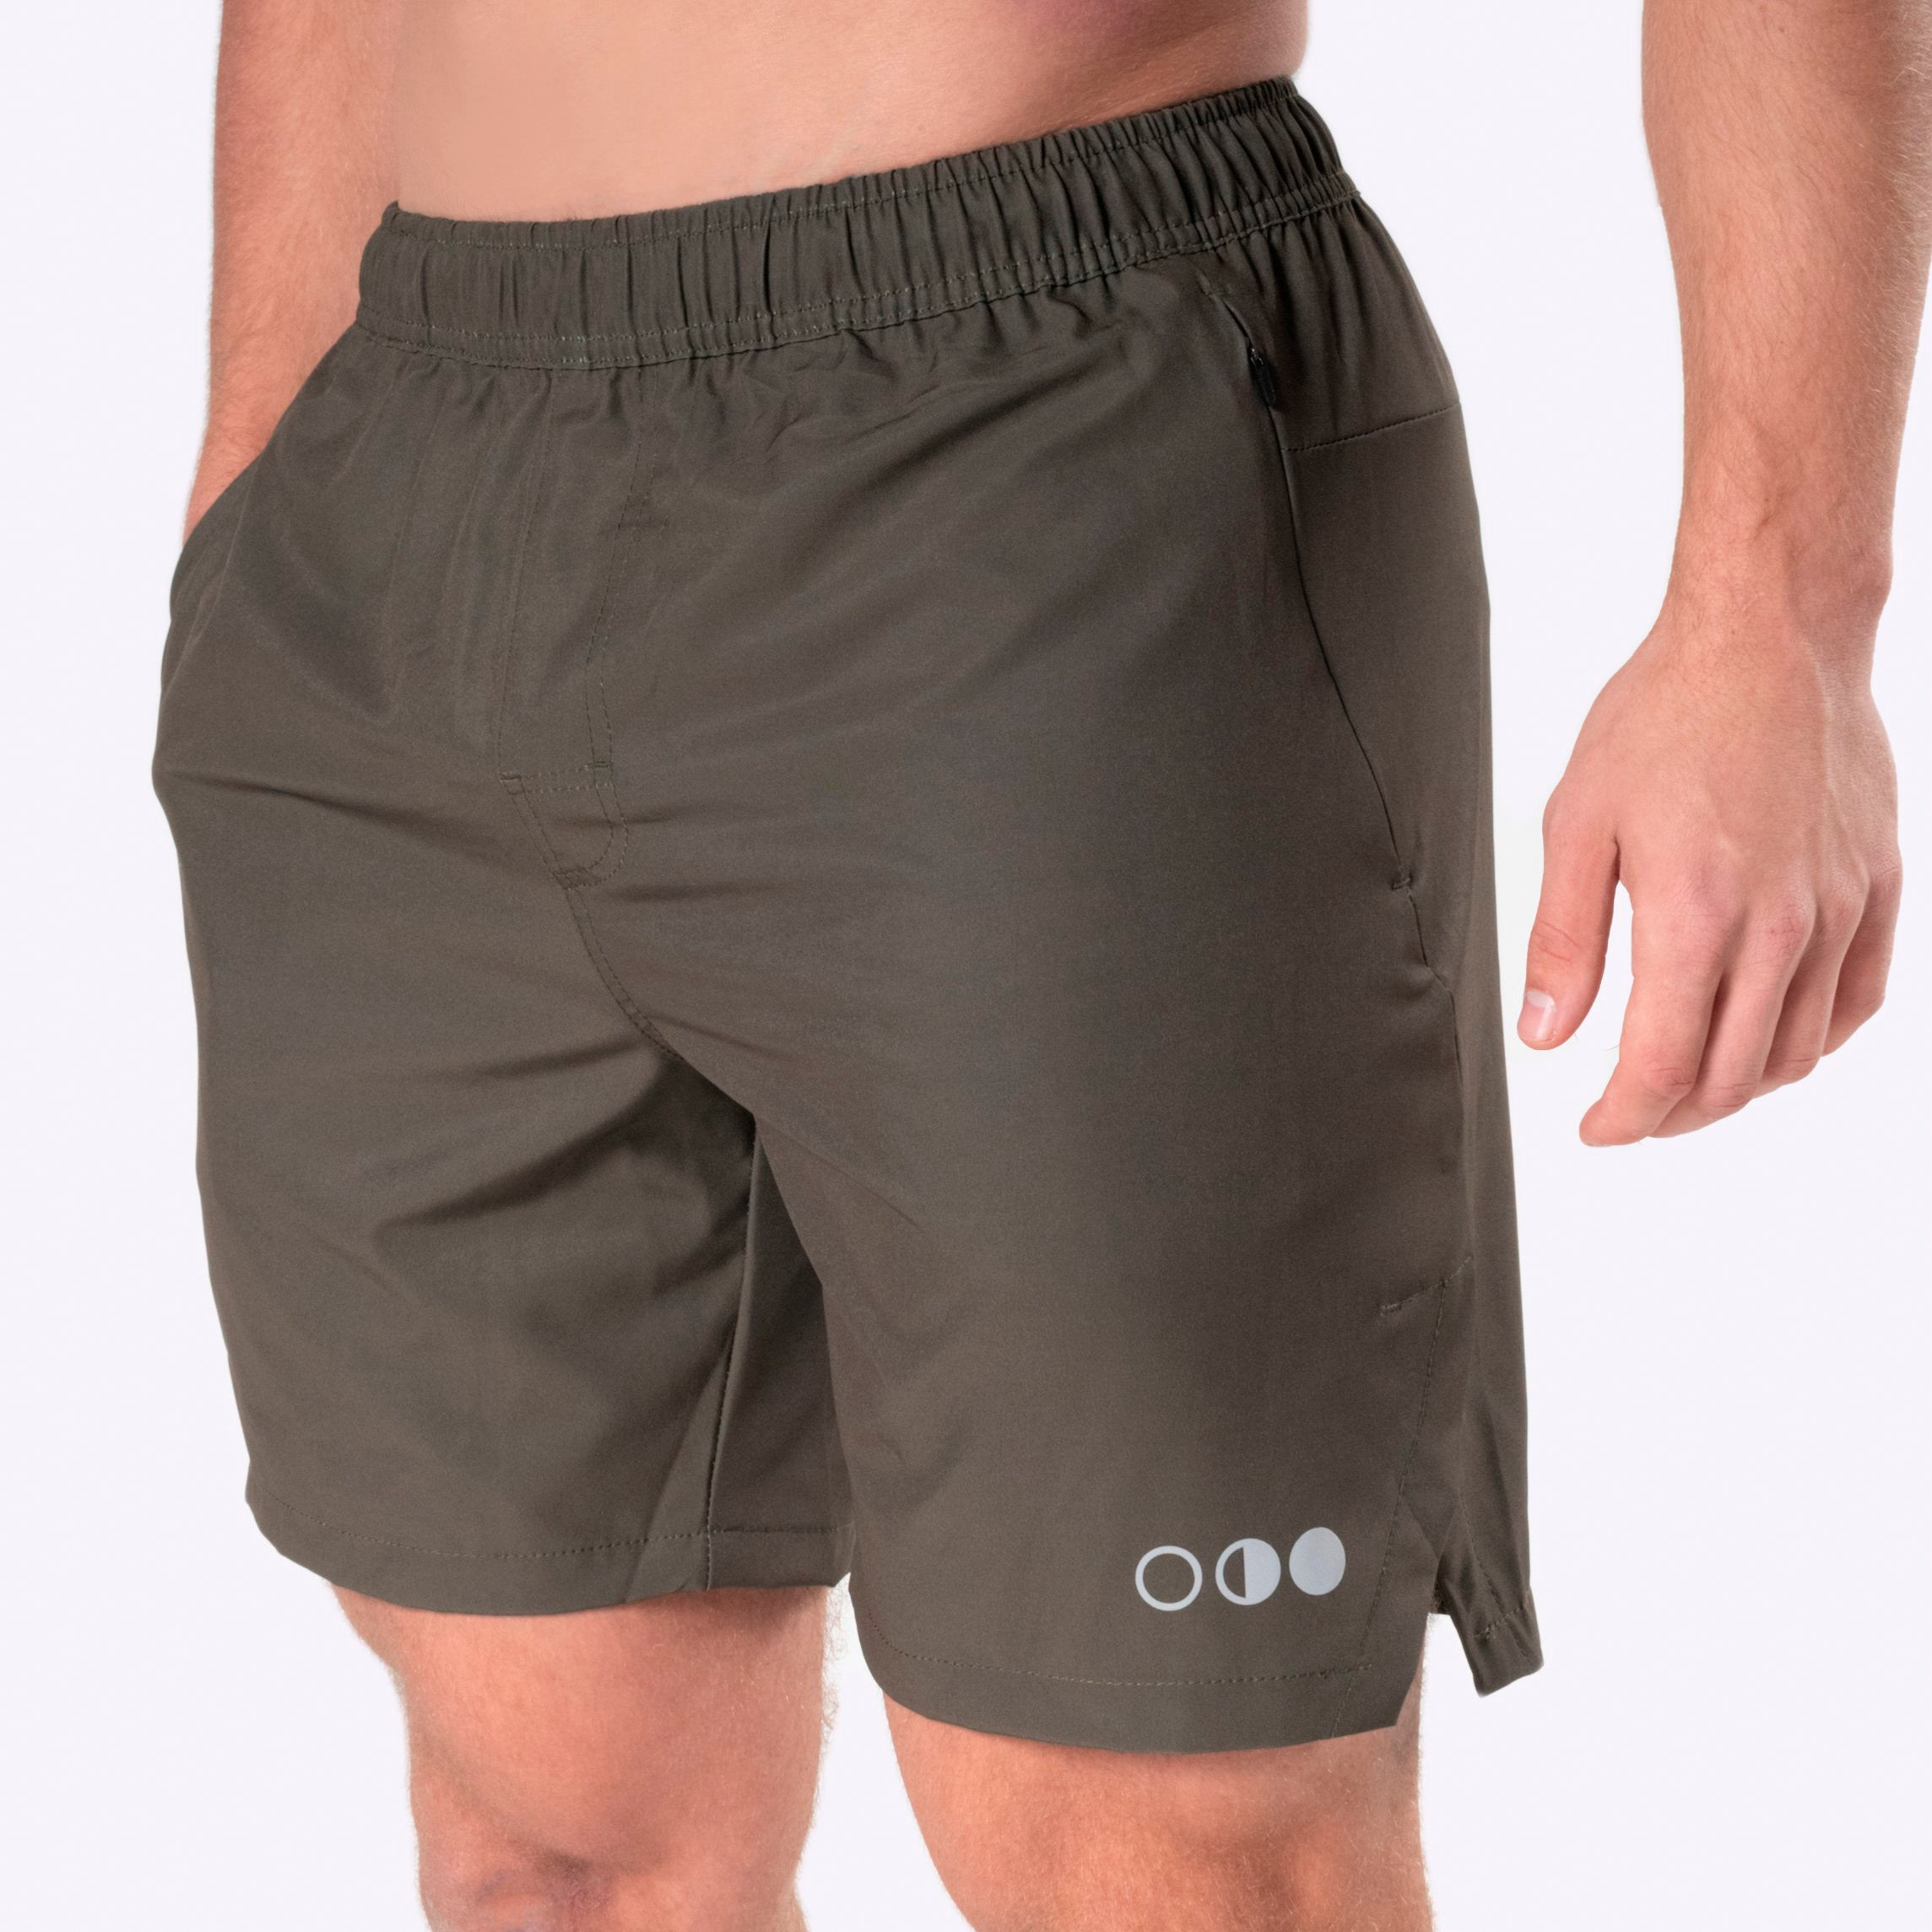 The Brave - Men's Cruiser Shorts 2.0 - DARK OLIVE